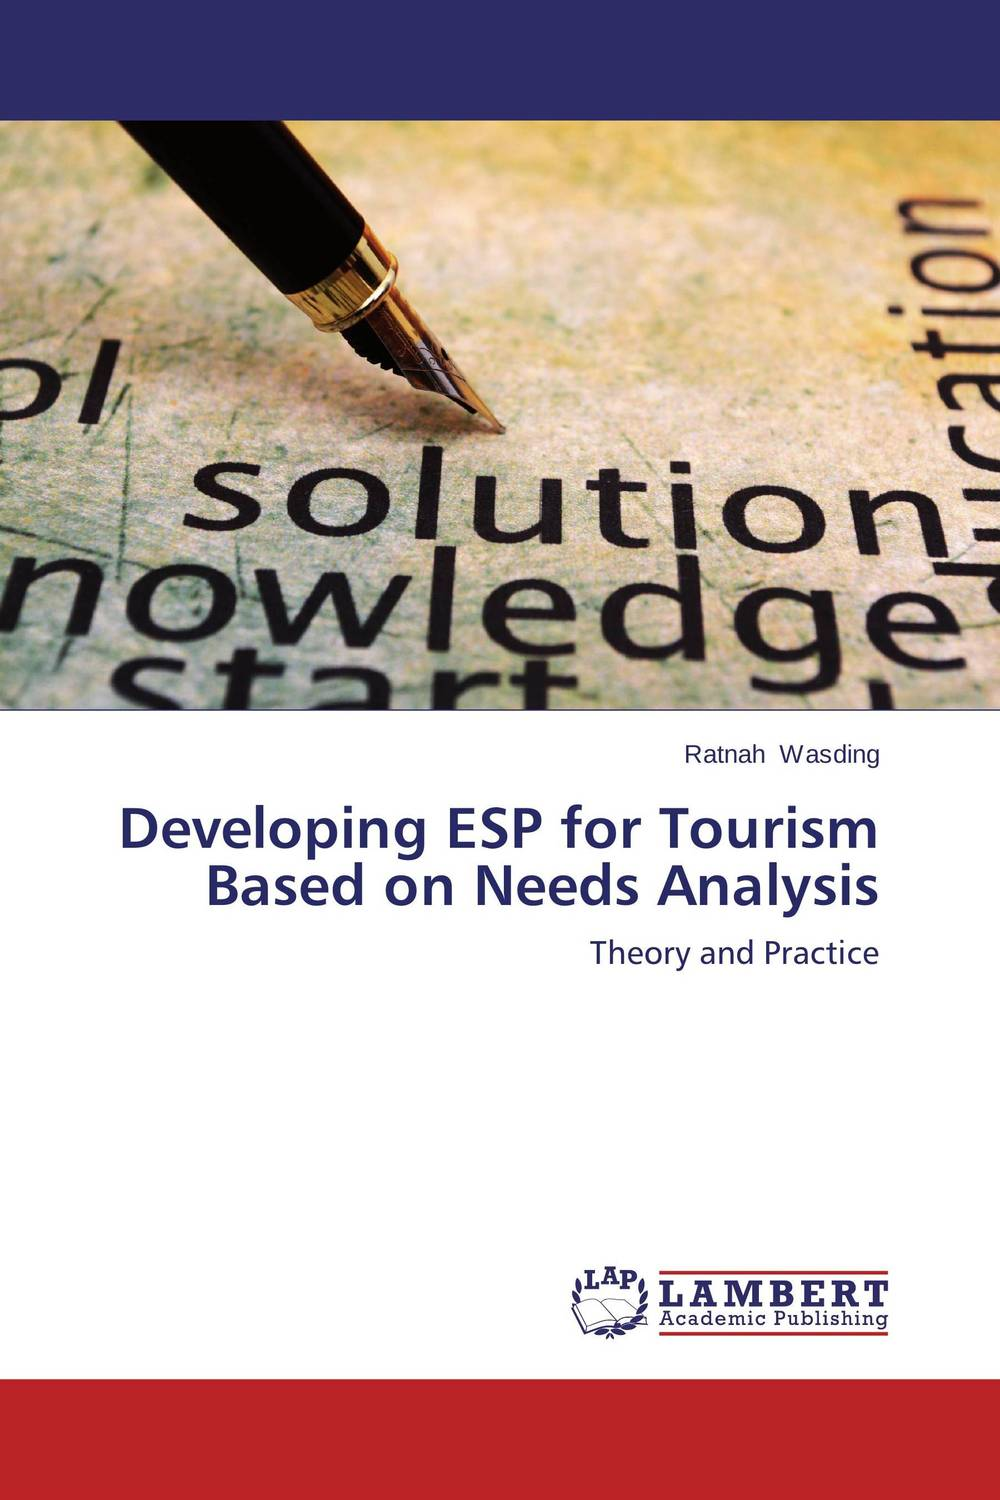 Developing ESP for Tourism Based on Needs Analysis fatigue analysis of asphalt concrete based on crack development